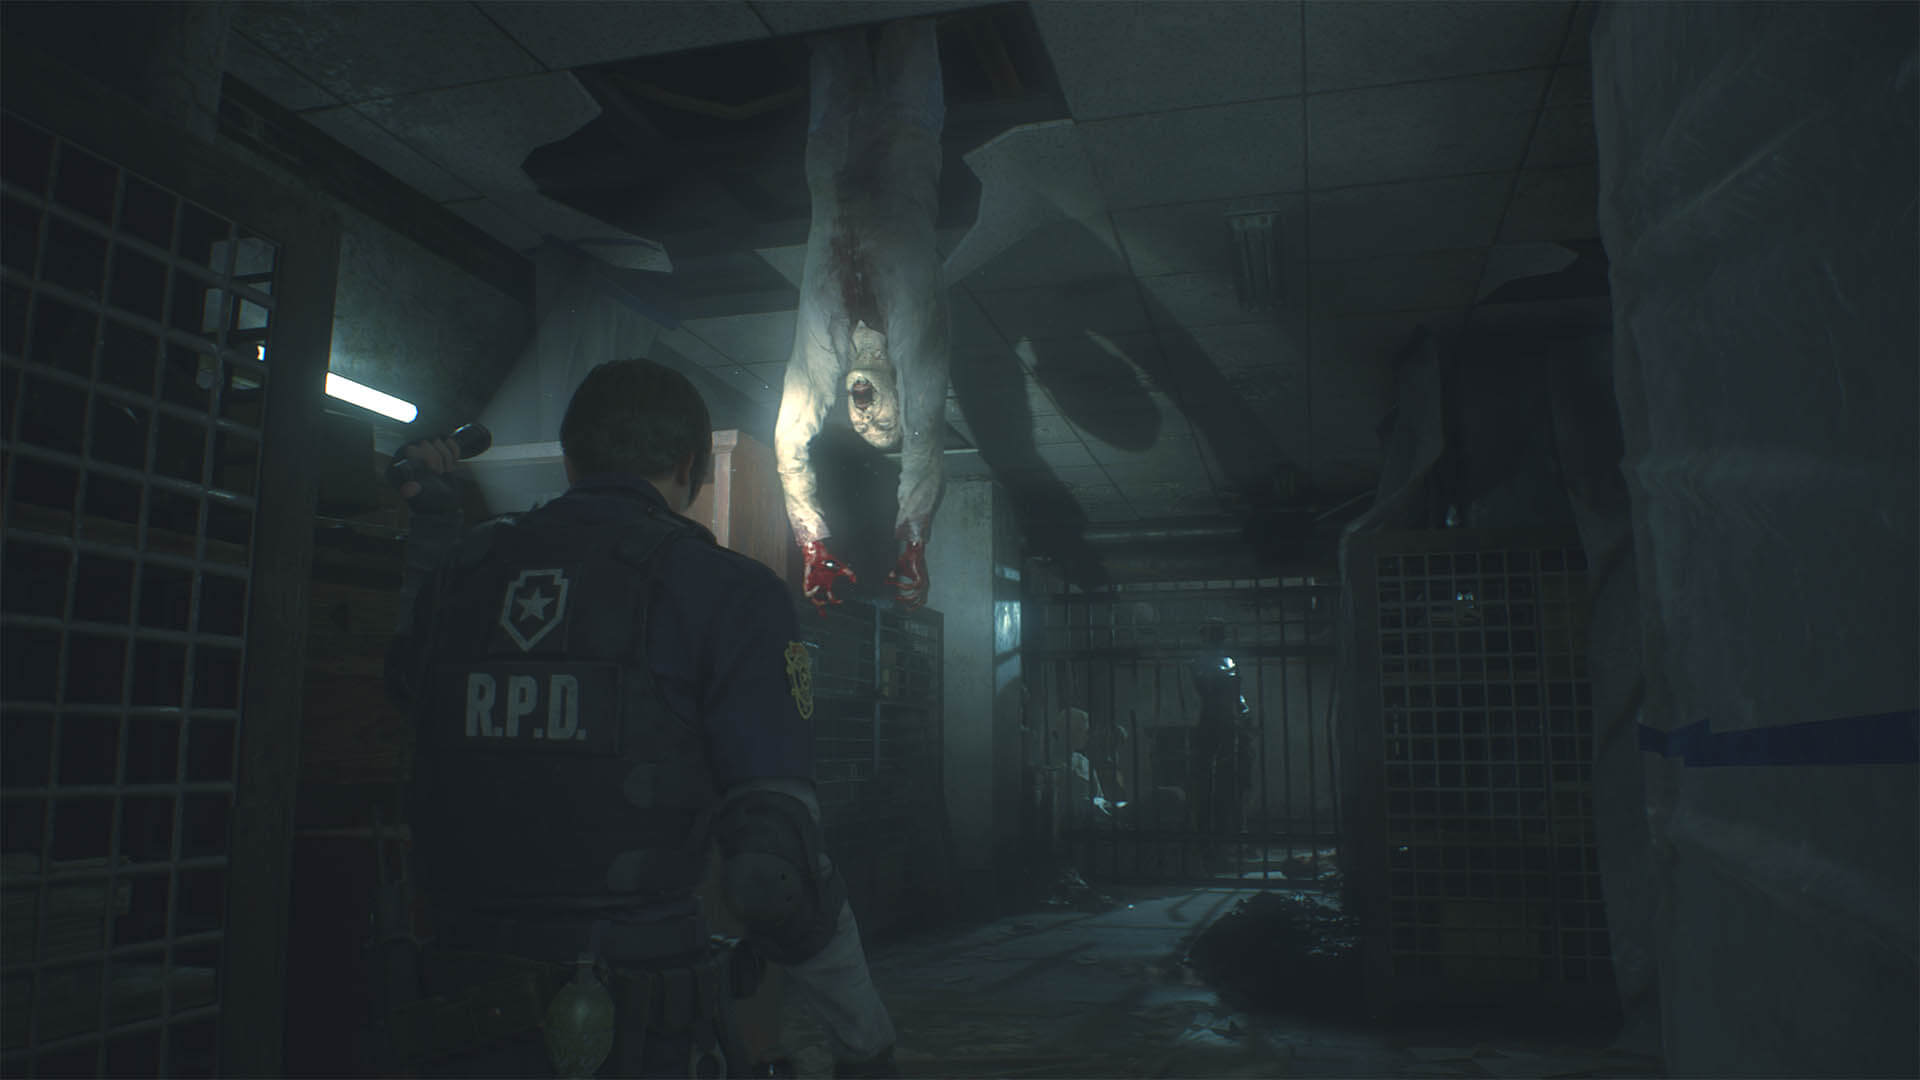 RESIDENT EVIL 2_pasadizos soliloquy 4